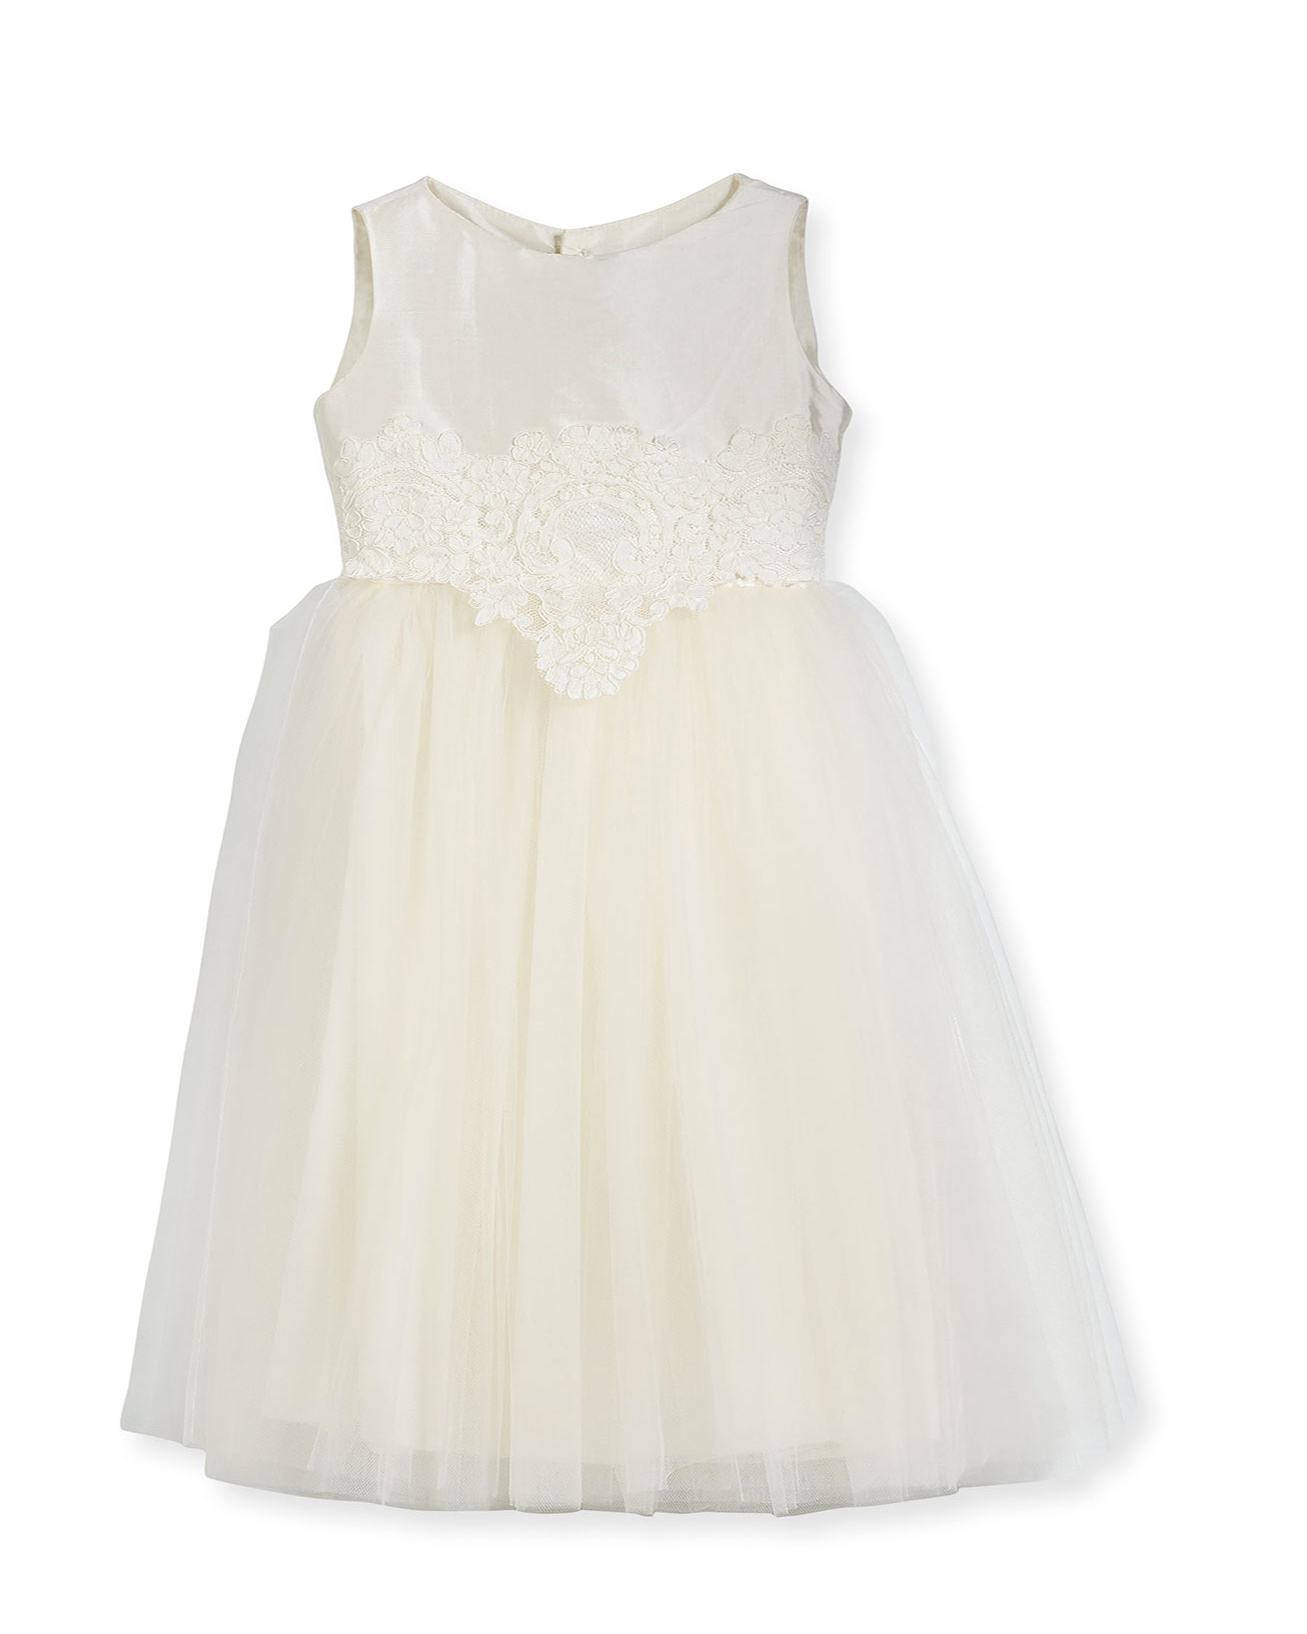 winter flower girl sleeveless white lace dress with tule skirt